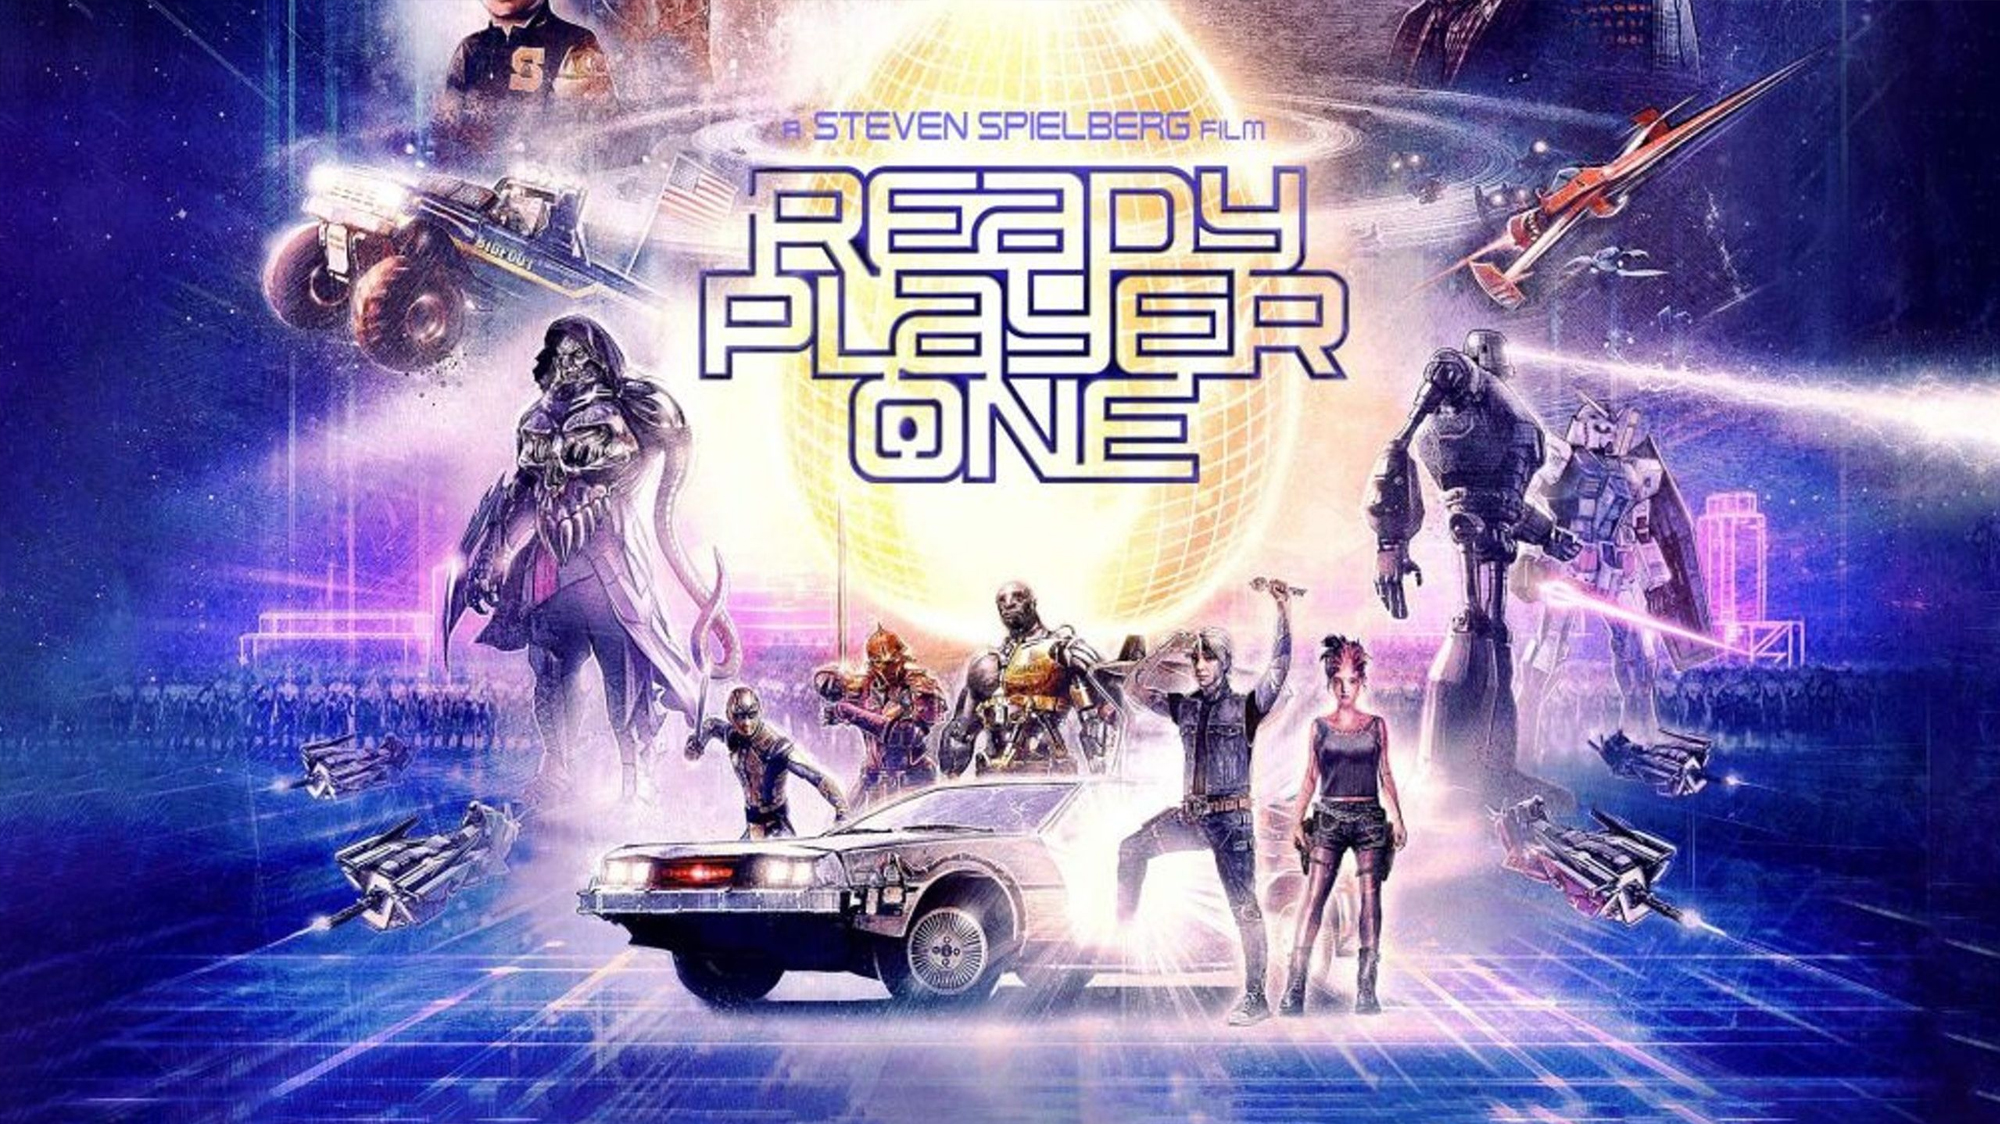 Ready Player One als Alternative zu Alita: Battle Angel